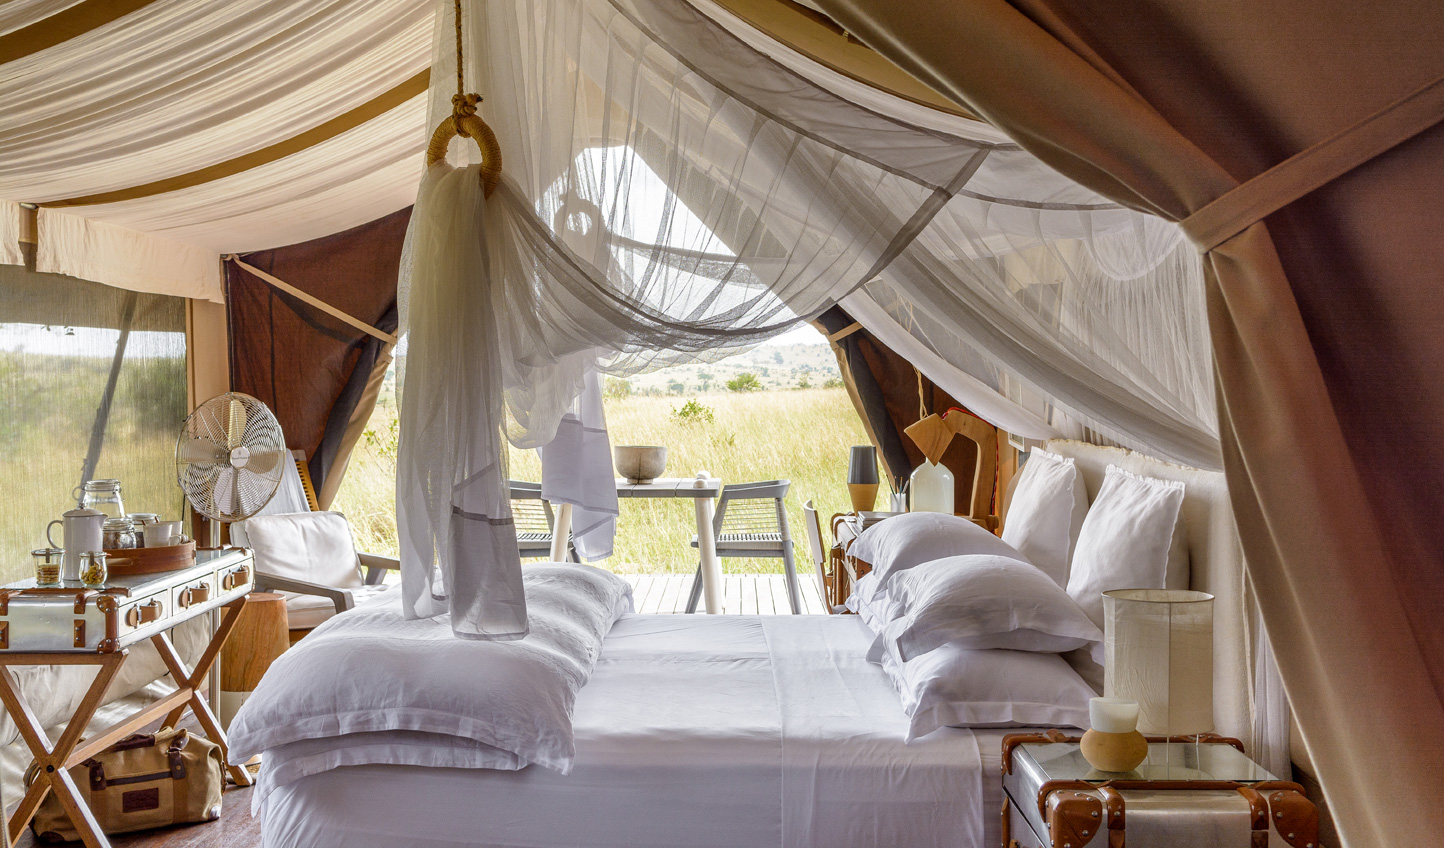 A touch of romanticism sweeps through your luxurious tent